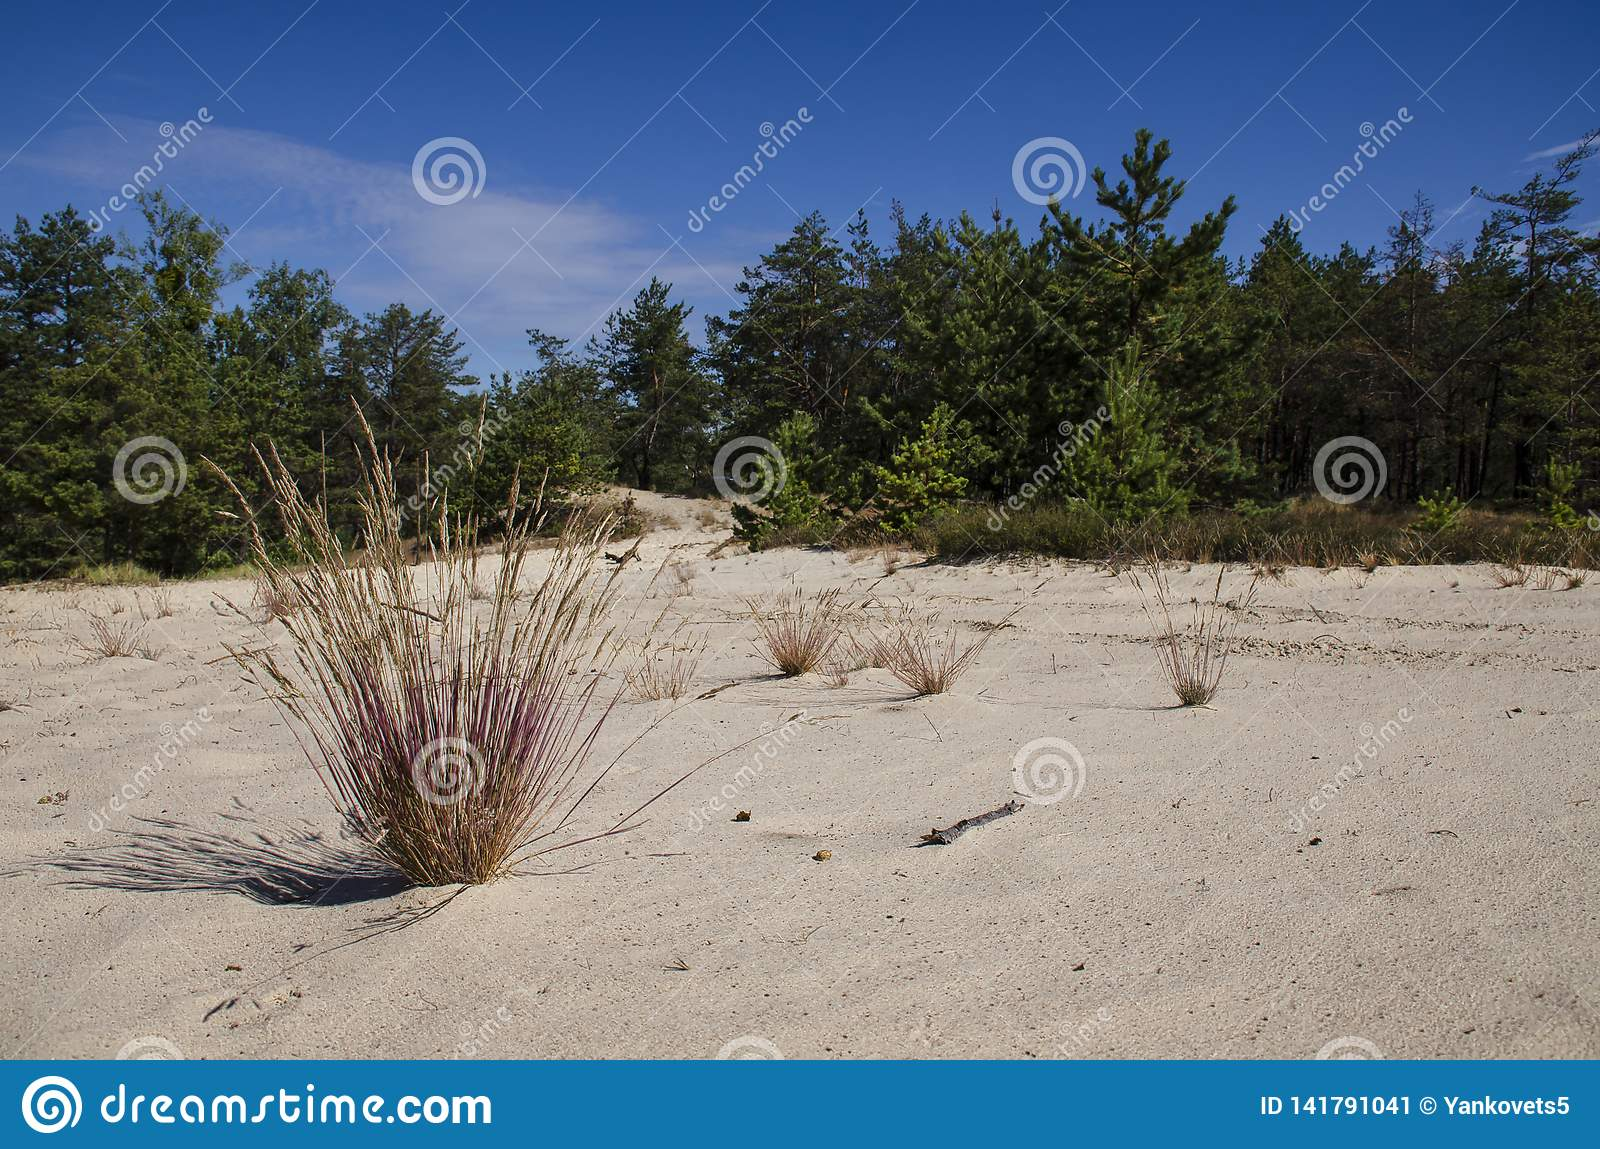 Bush herbs growing on the white sands of the desert next to the pine forest in the background of a blue sky